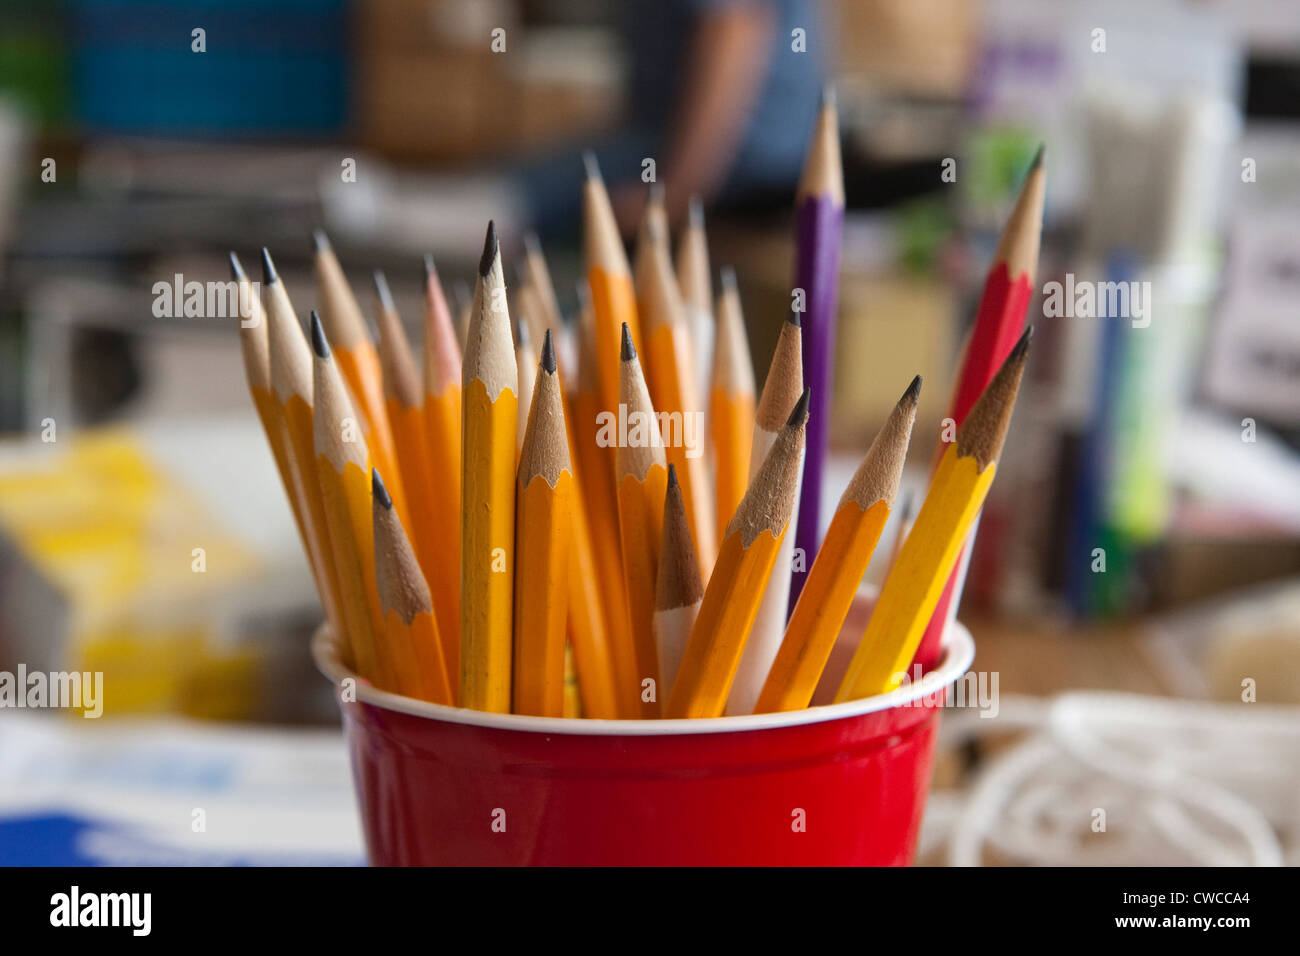 Red plastic cup full of sharpened #2 wood lead  pencils - Stock Image